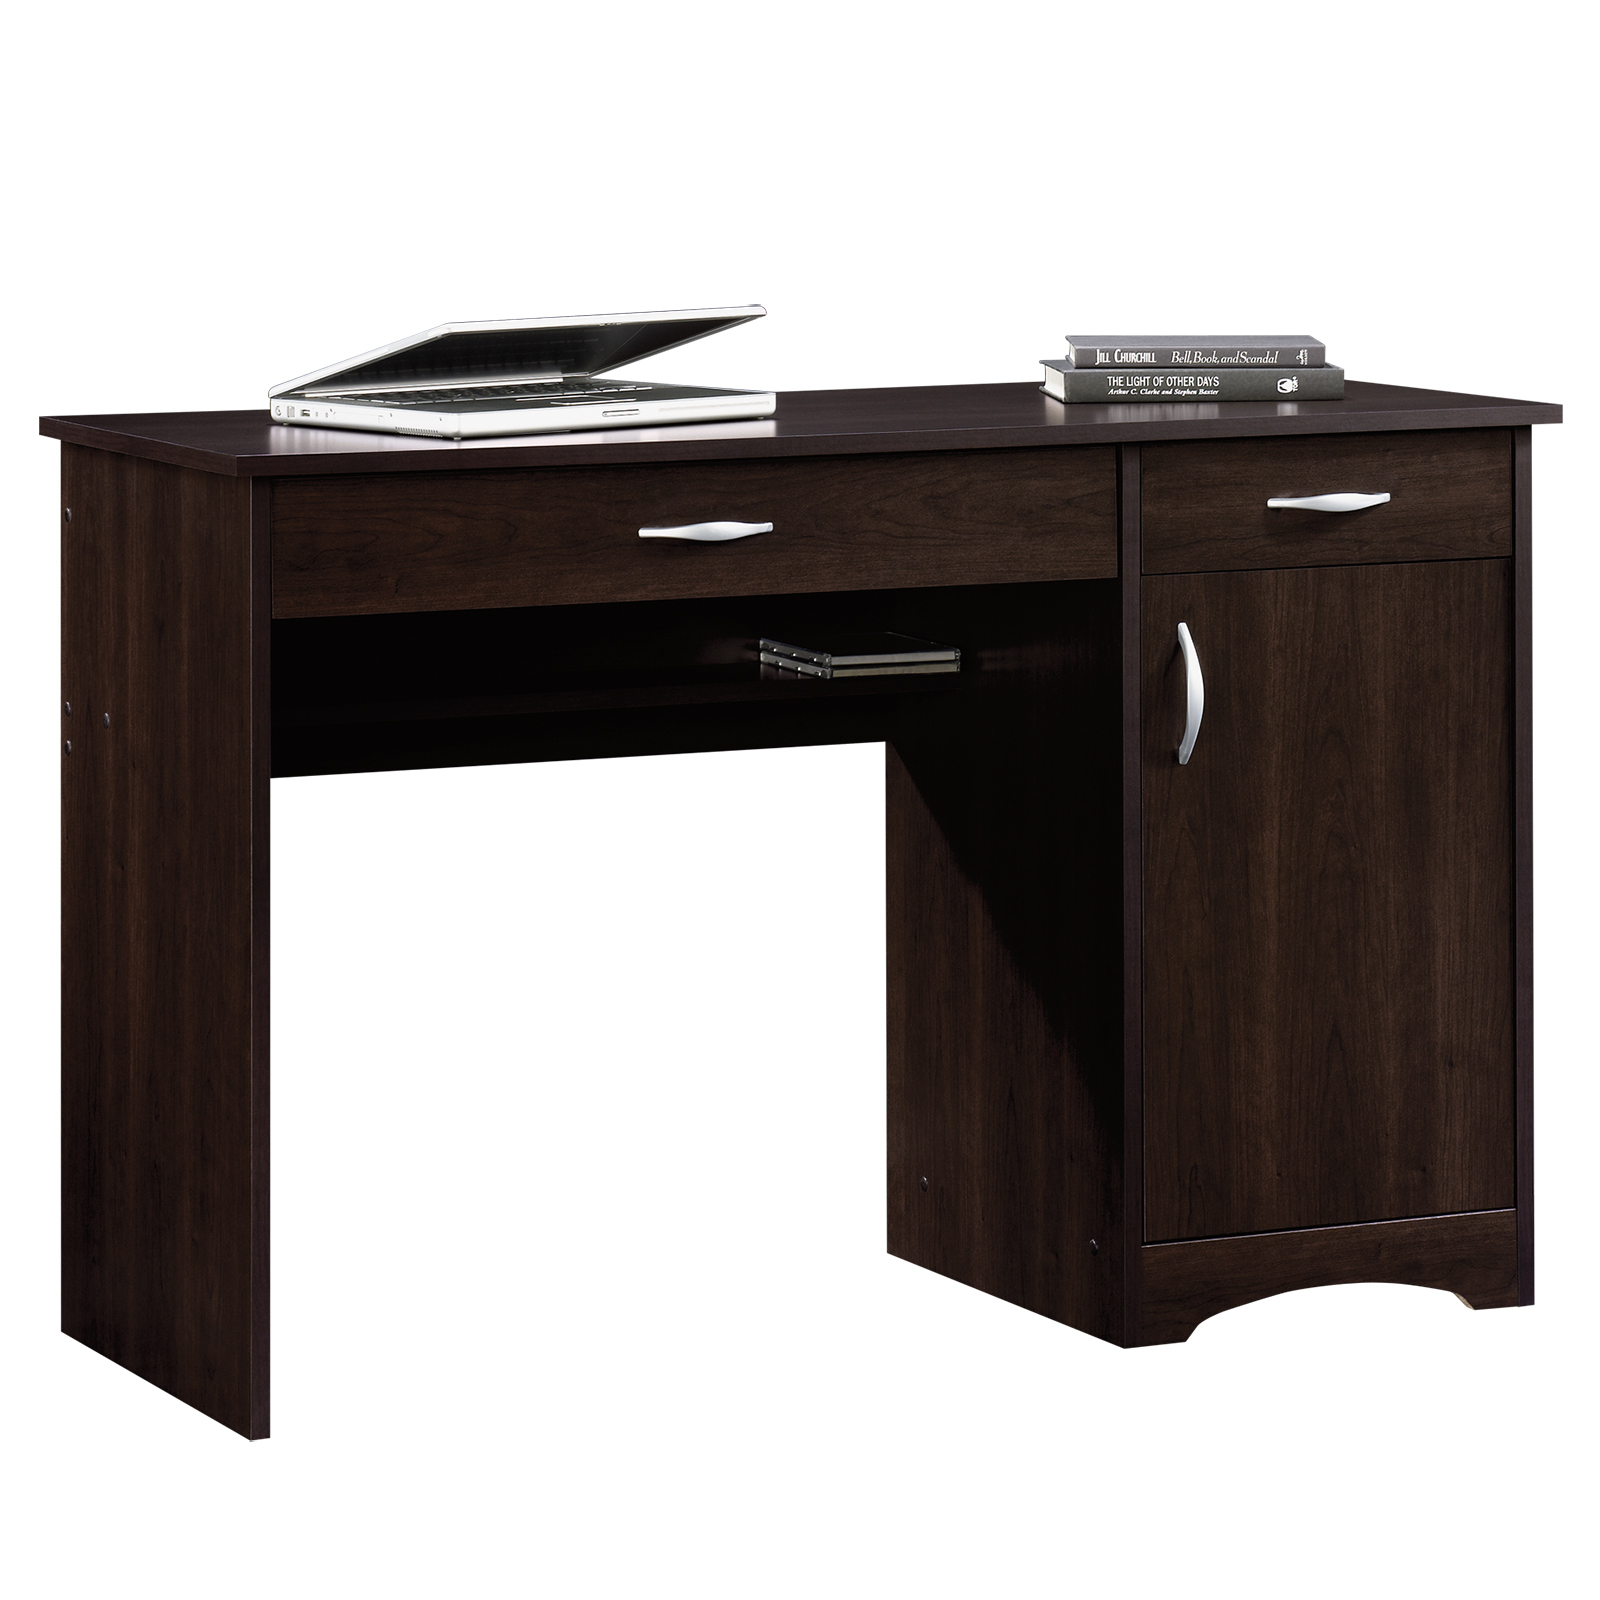 Sauder Computer Desks with Hutch | Sauder Computer Desks | Sauder Desk Furniture